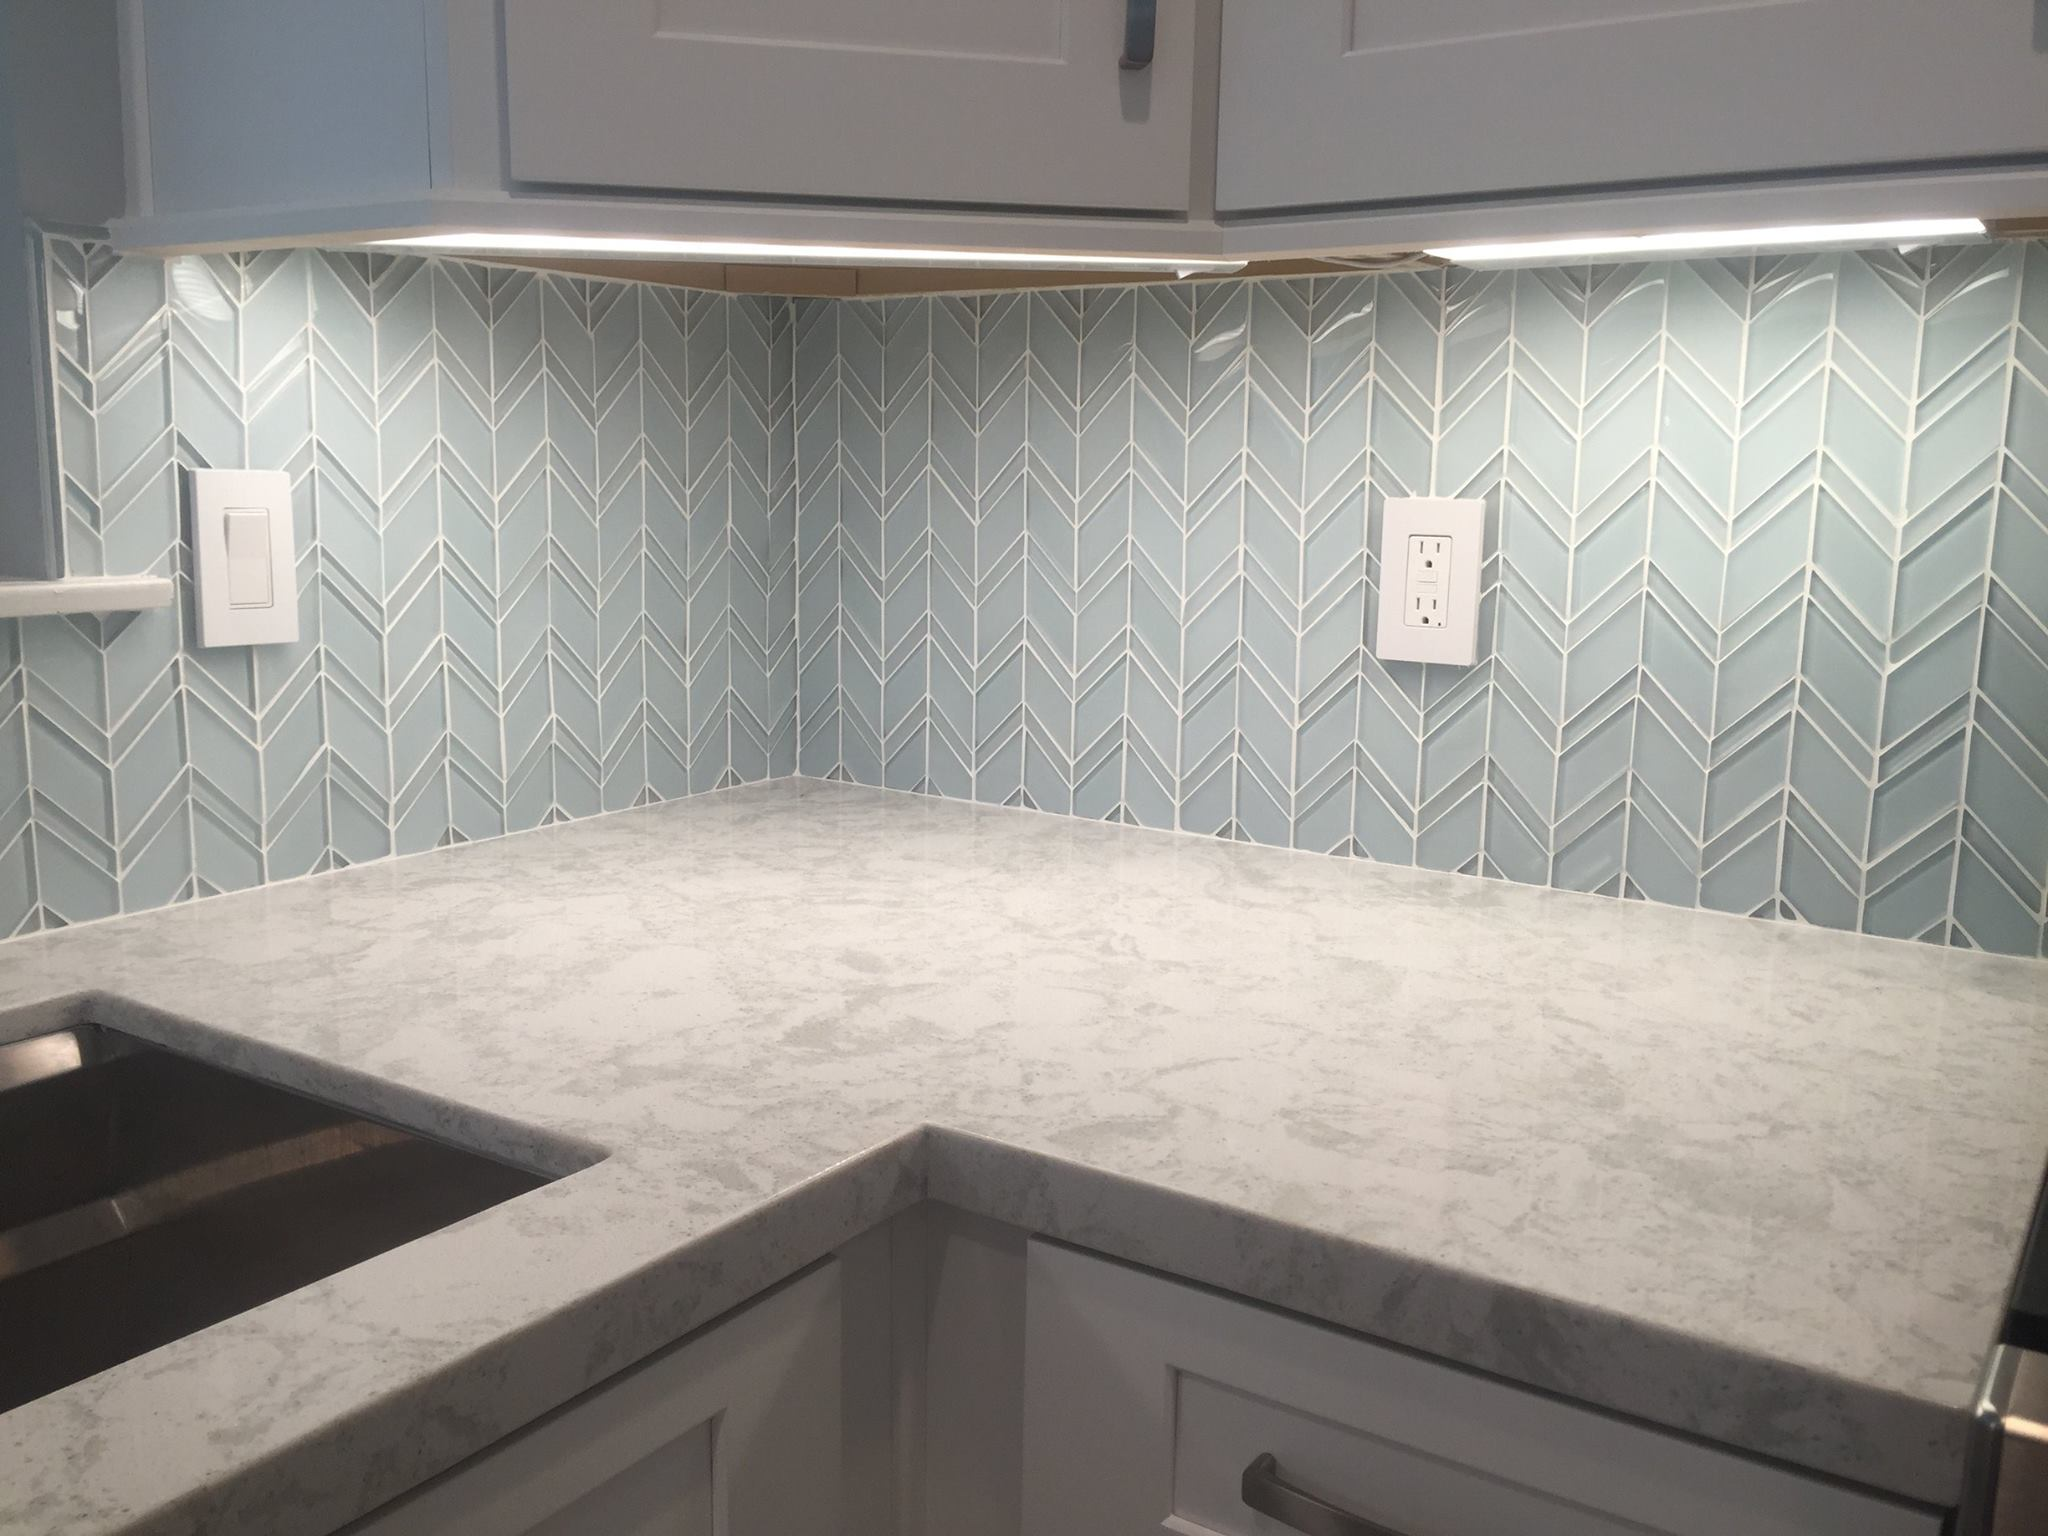 Kitchen renovation ideas to fall in love with this fall - Backsplash tile designs patterns ...